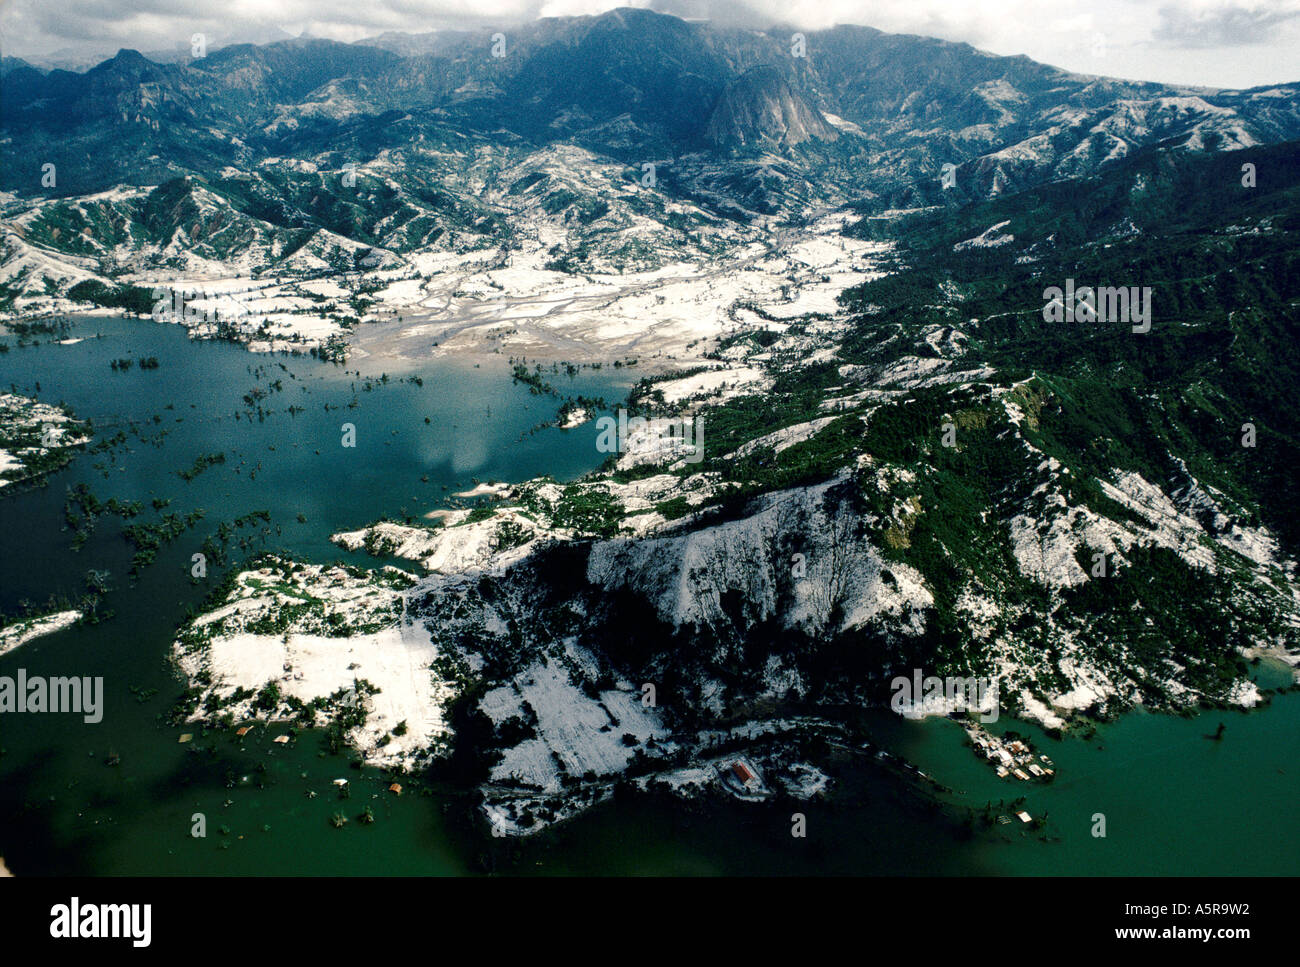 MOUNT PINATUBO DISASTER FEBRUARY 1991 THE MAN MADE DAM AT THE BENQUET CO COPPERMINE IN ZAMBALES PROVINCE THE COMPANY WAS OBLIGE - Stock Image